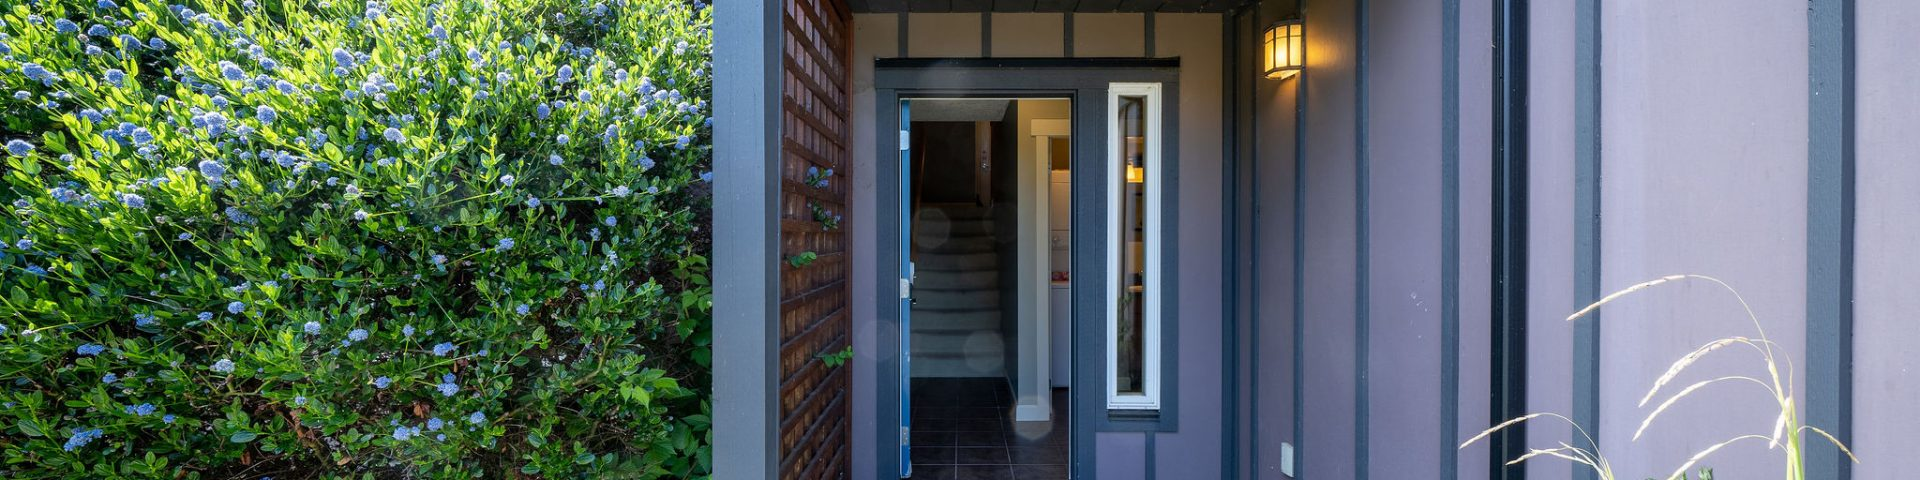 Sooke Harbour Townhome - 142